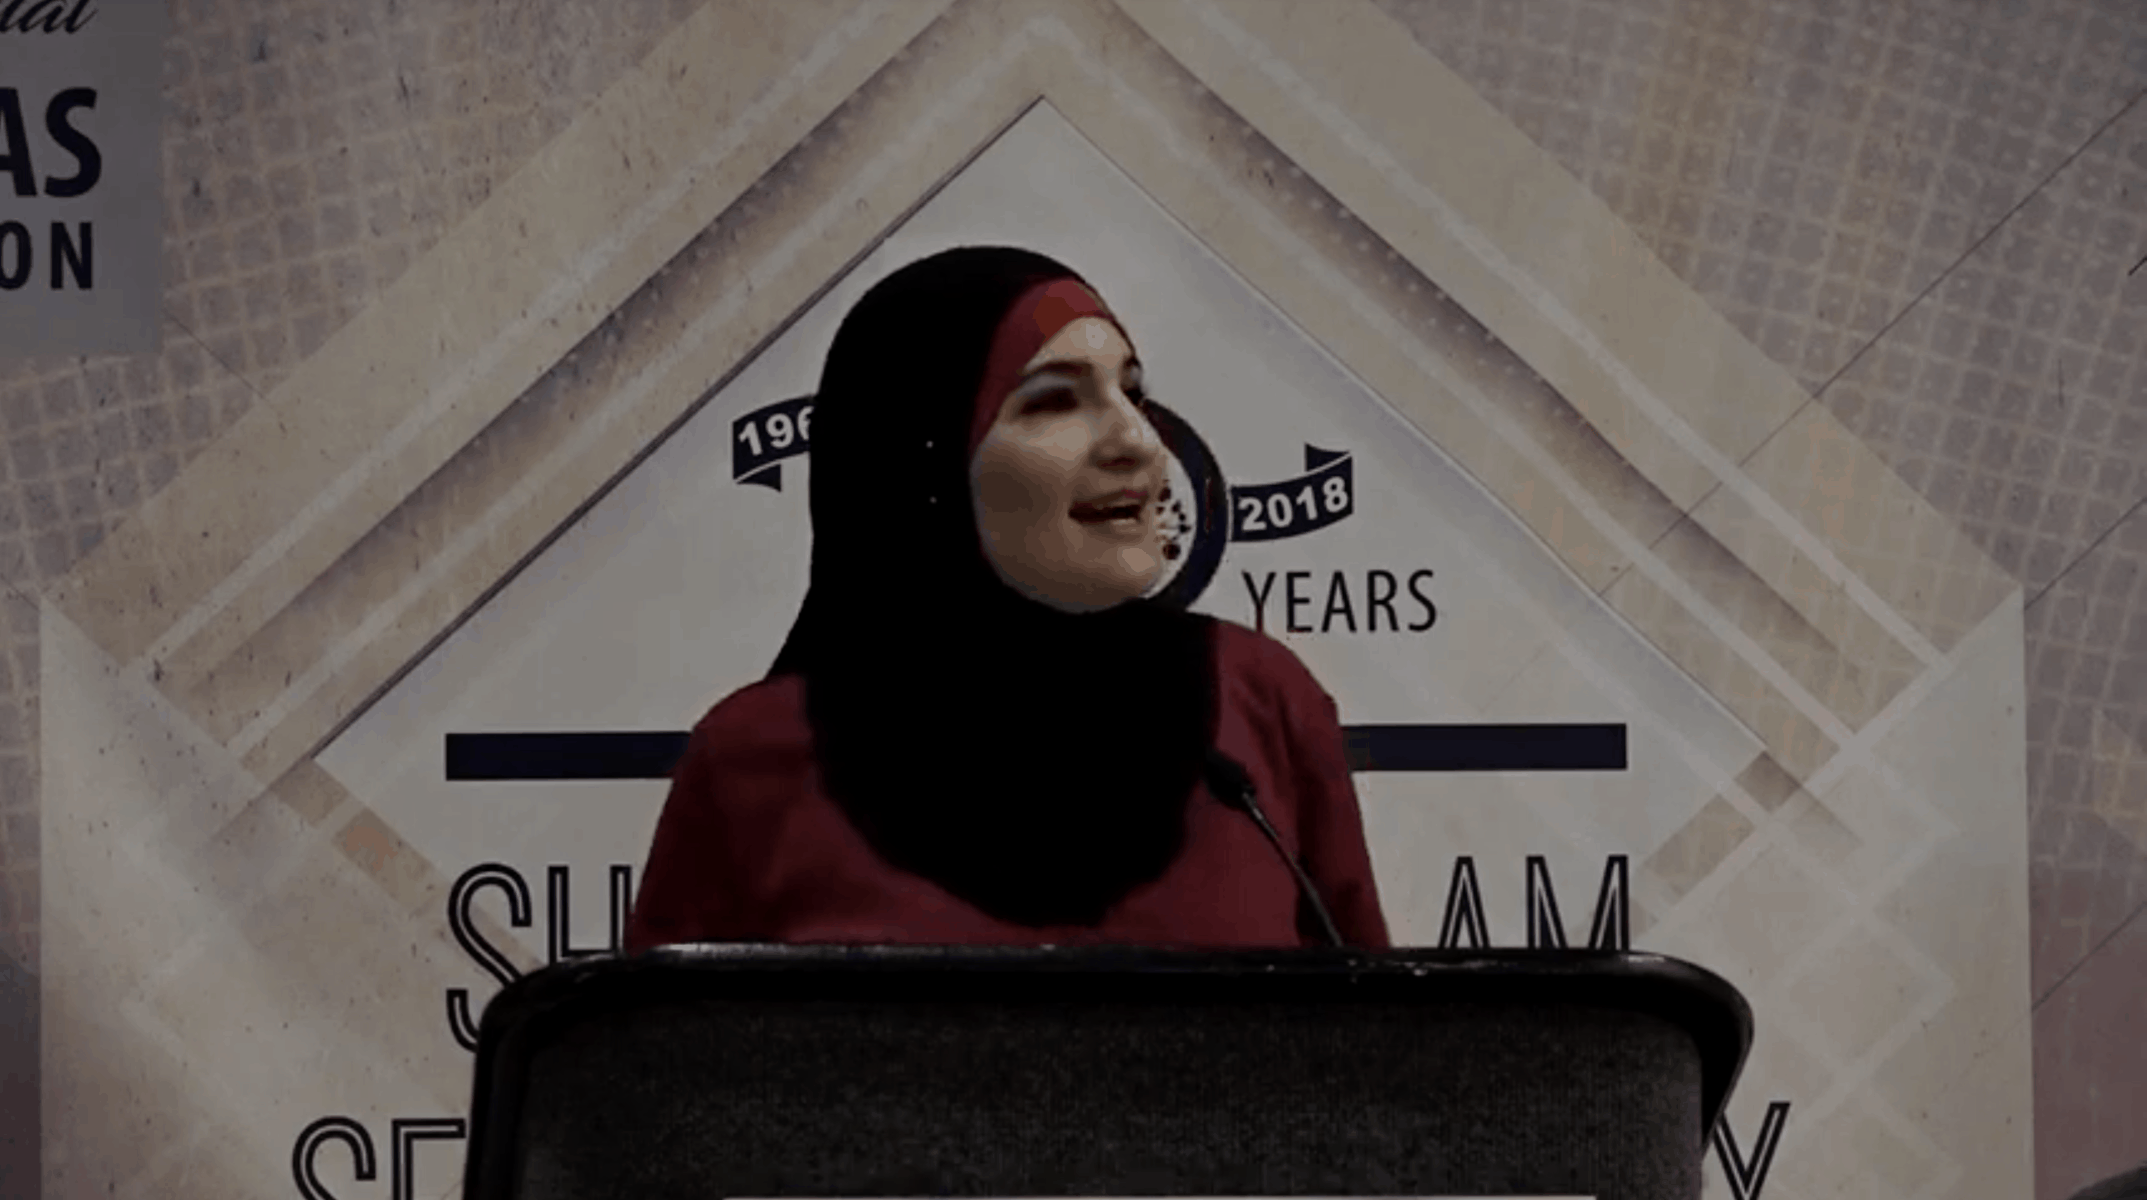 Linda Sarsour – Haters Gonna Hate: How to Manage the Opposition